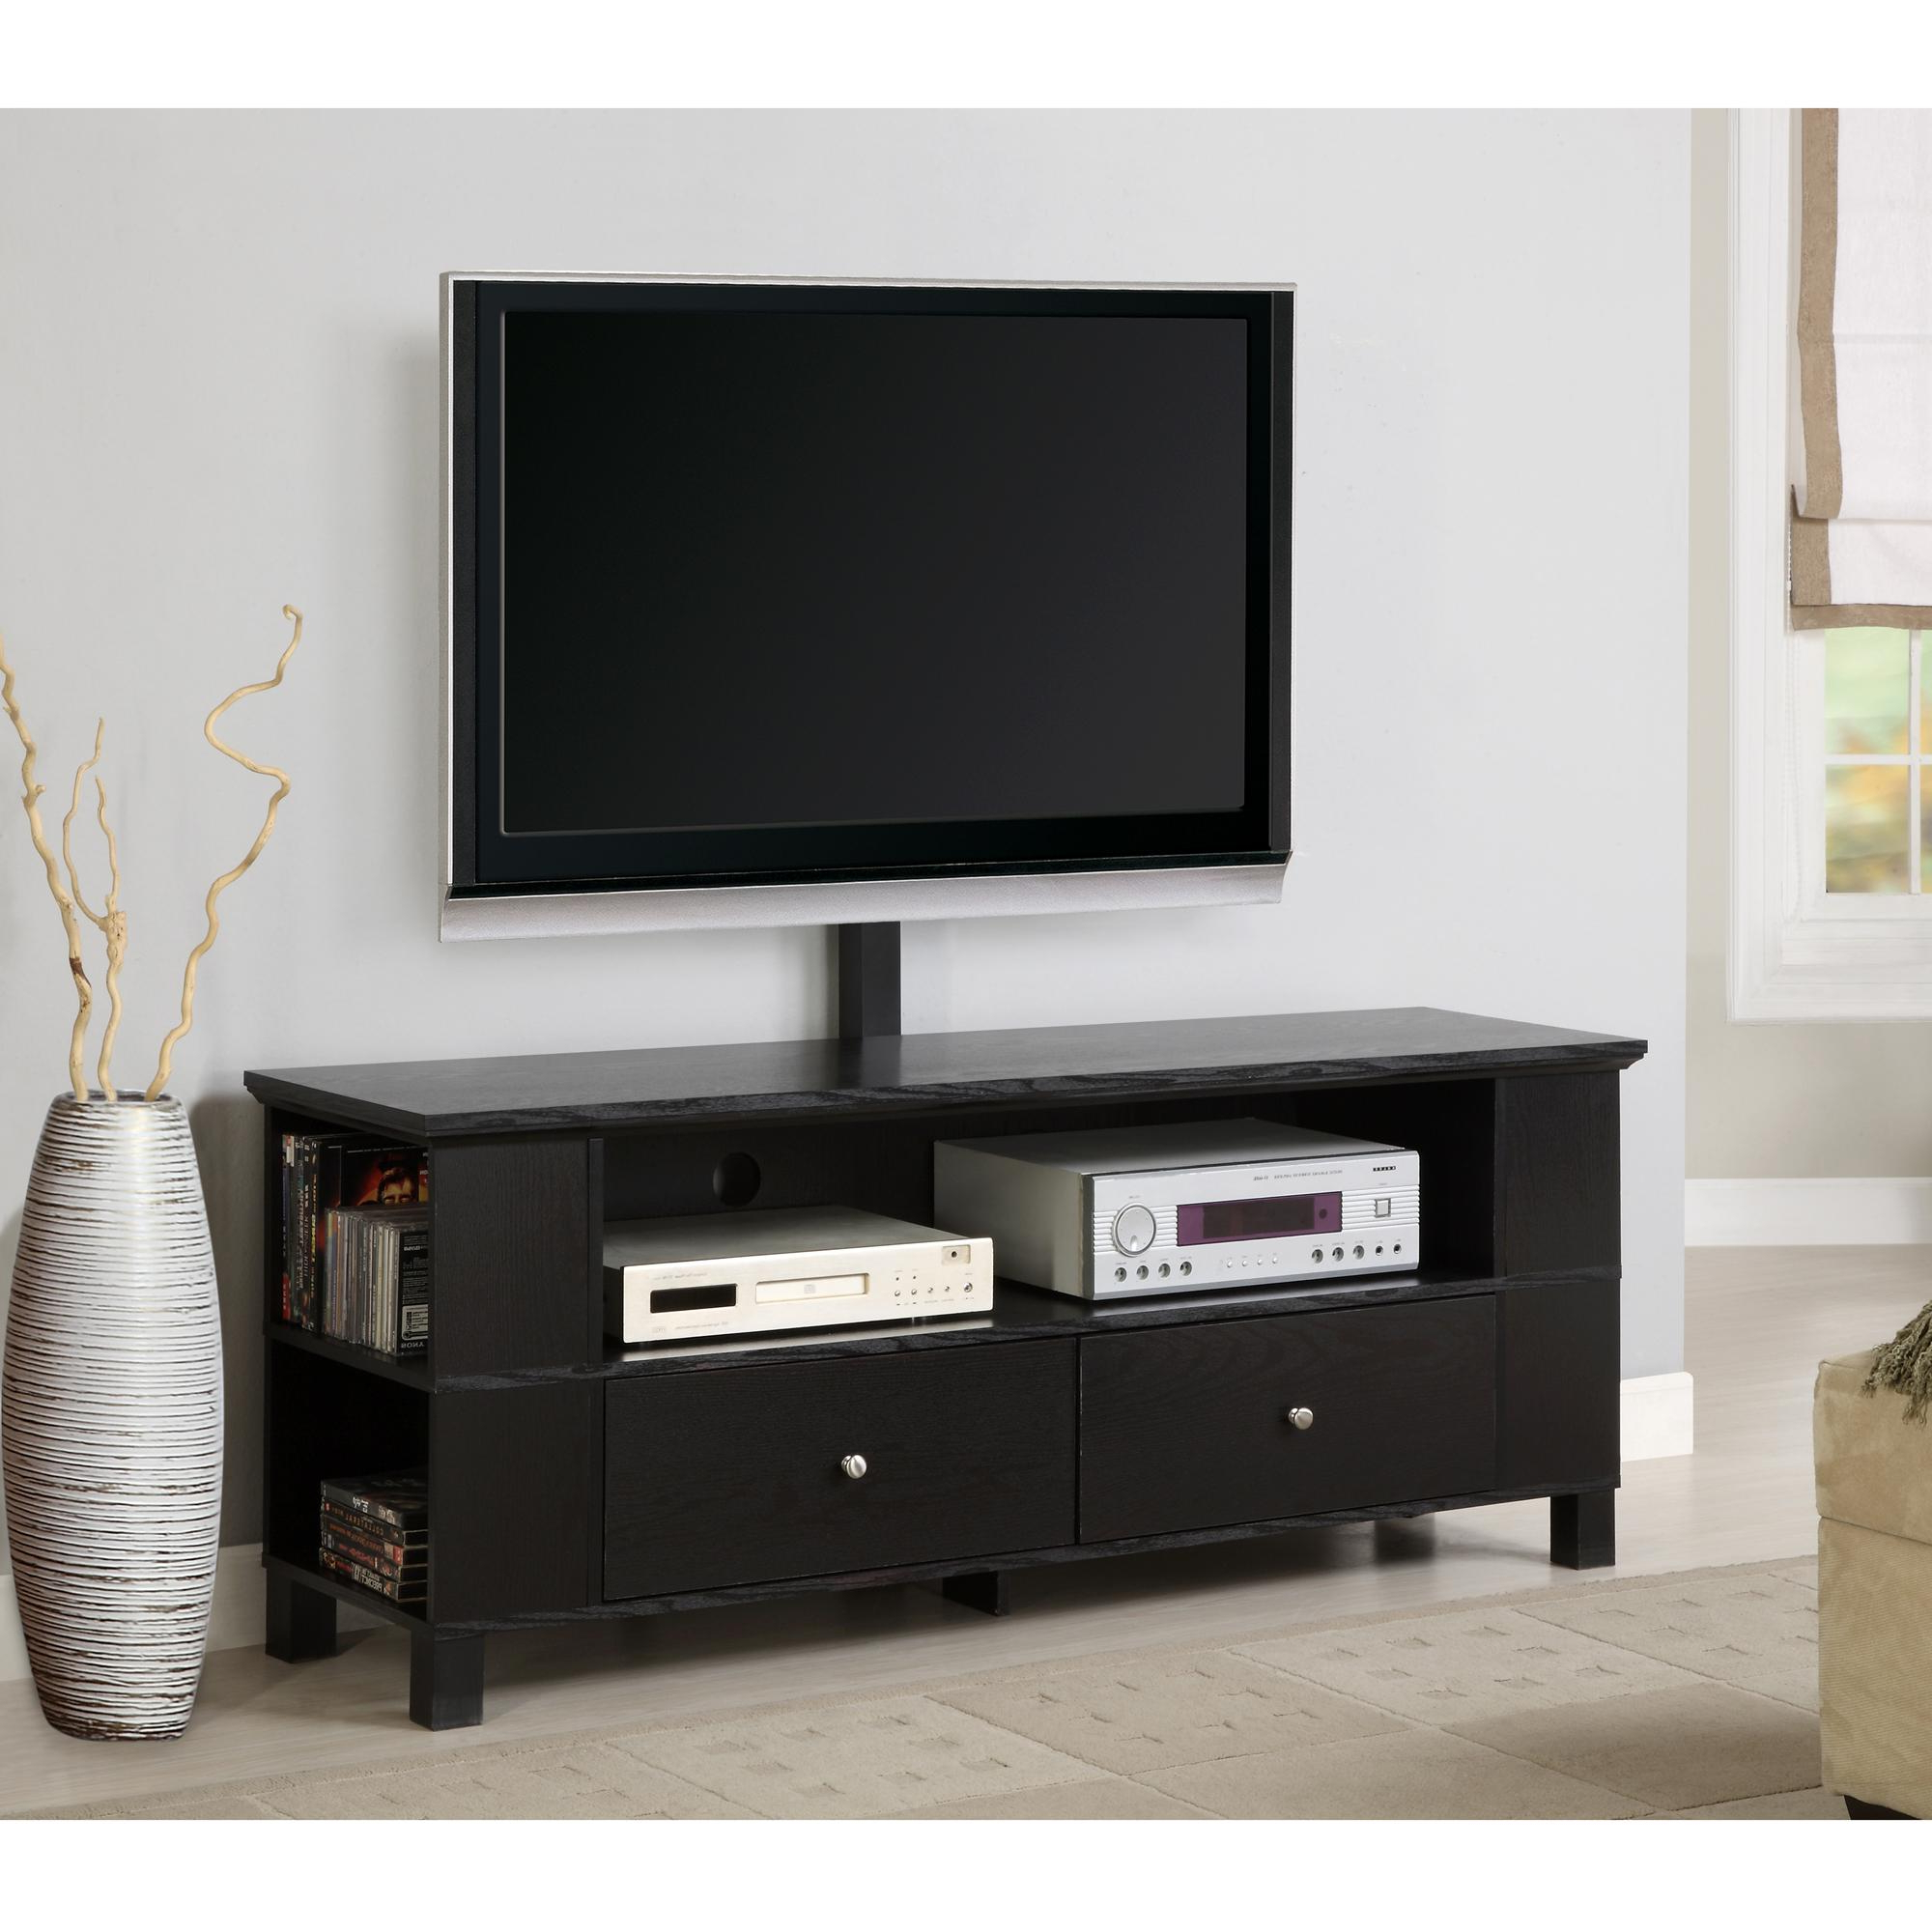 """Best And Newest Hal Tv Stands For Tvs Up To 60"""" With Regard To Amazon – Walker Edison 60"""" Class Black Wood Tv Stand (View 2 of 25)"""